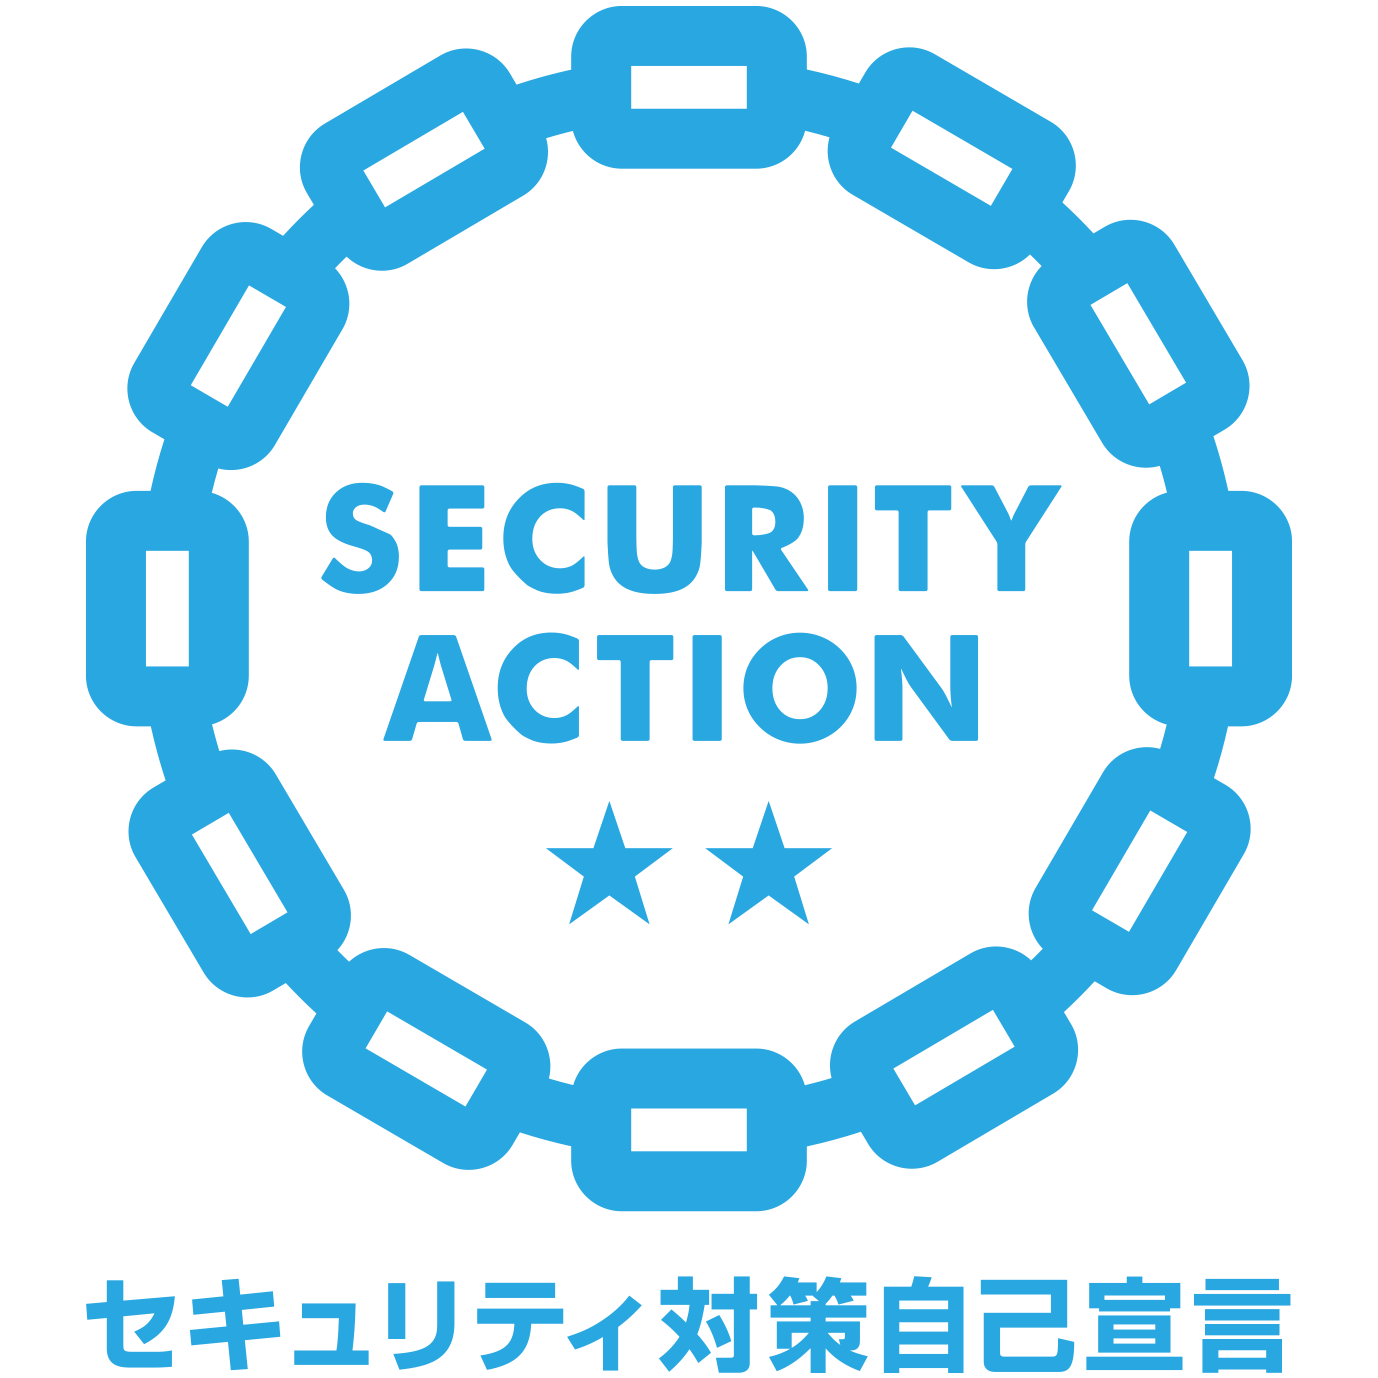 SECURITY ACTIONロゴ